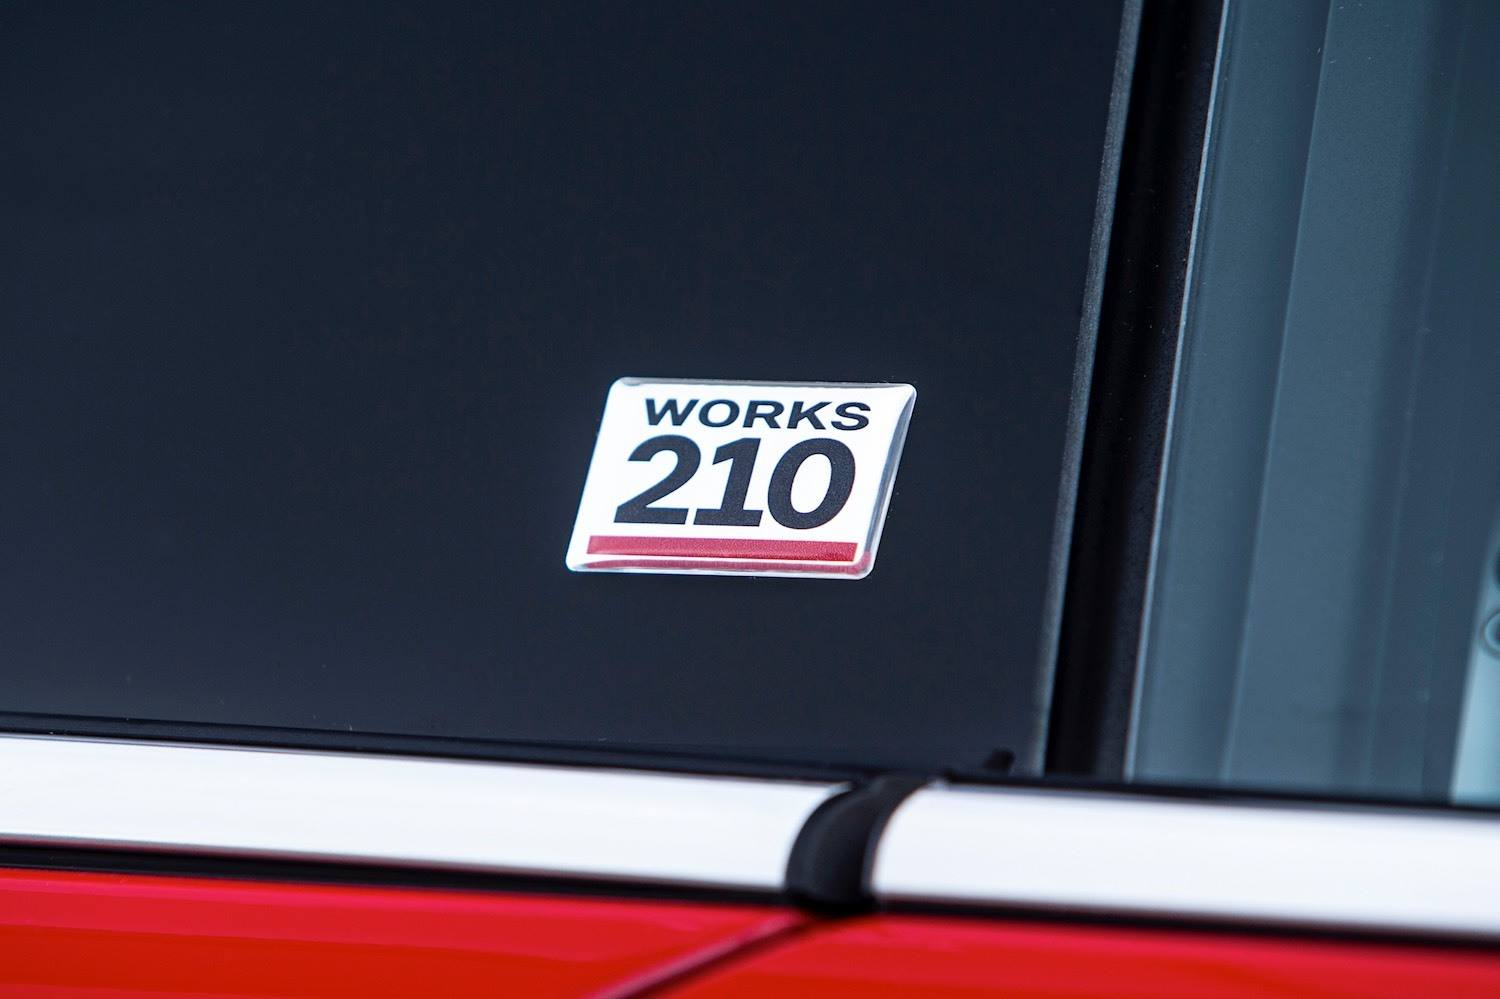 Tom Scanlan reviews the Mini Cooper S Works 210 for Drive 27